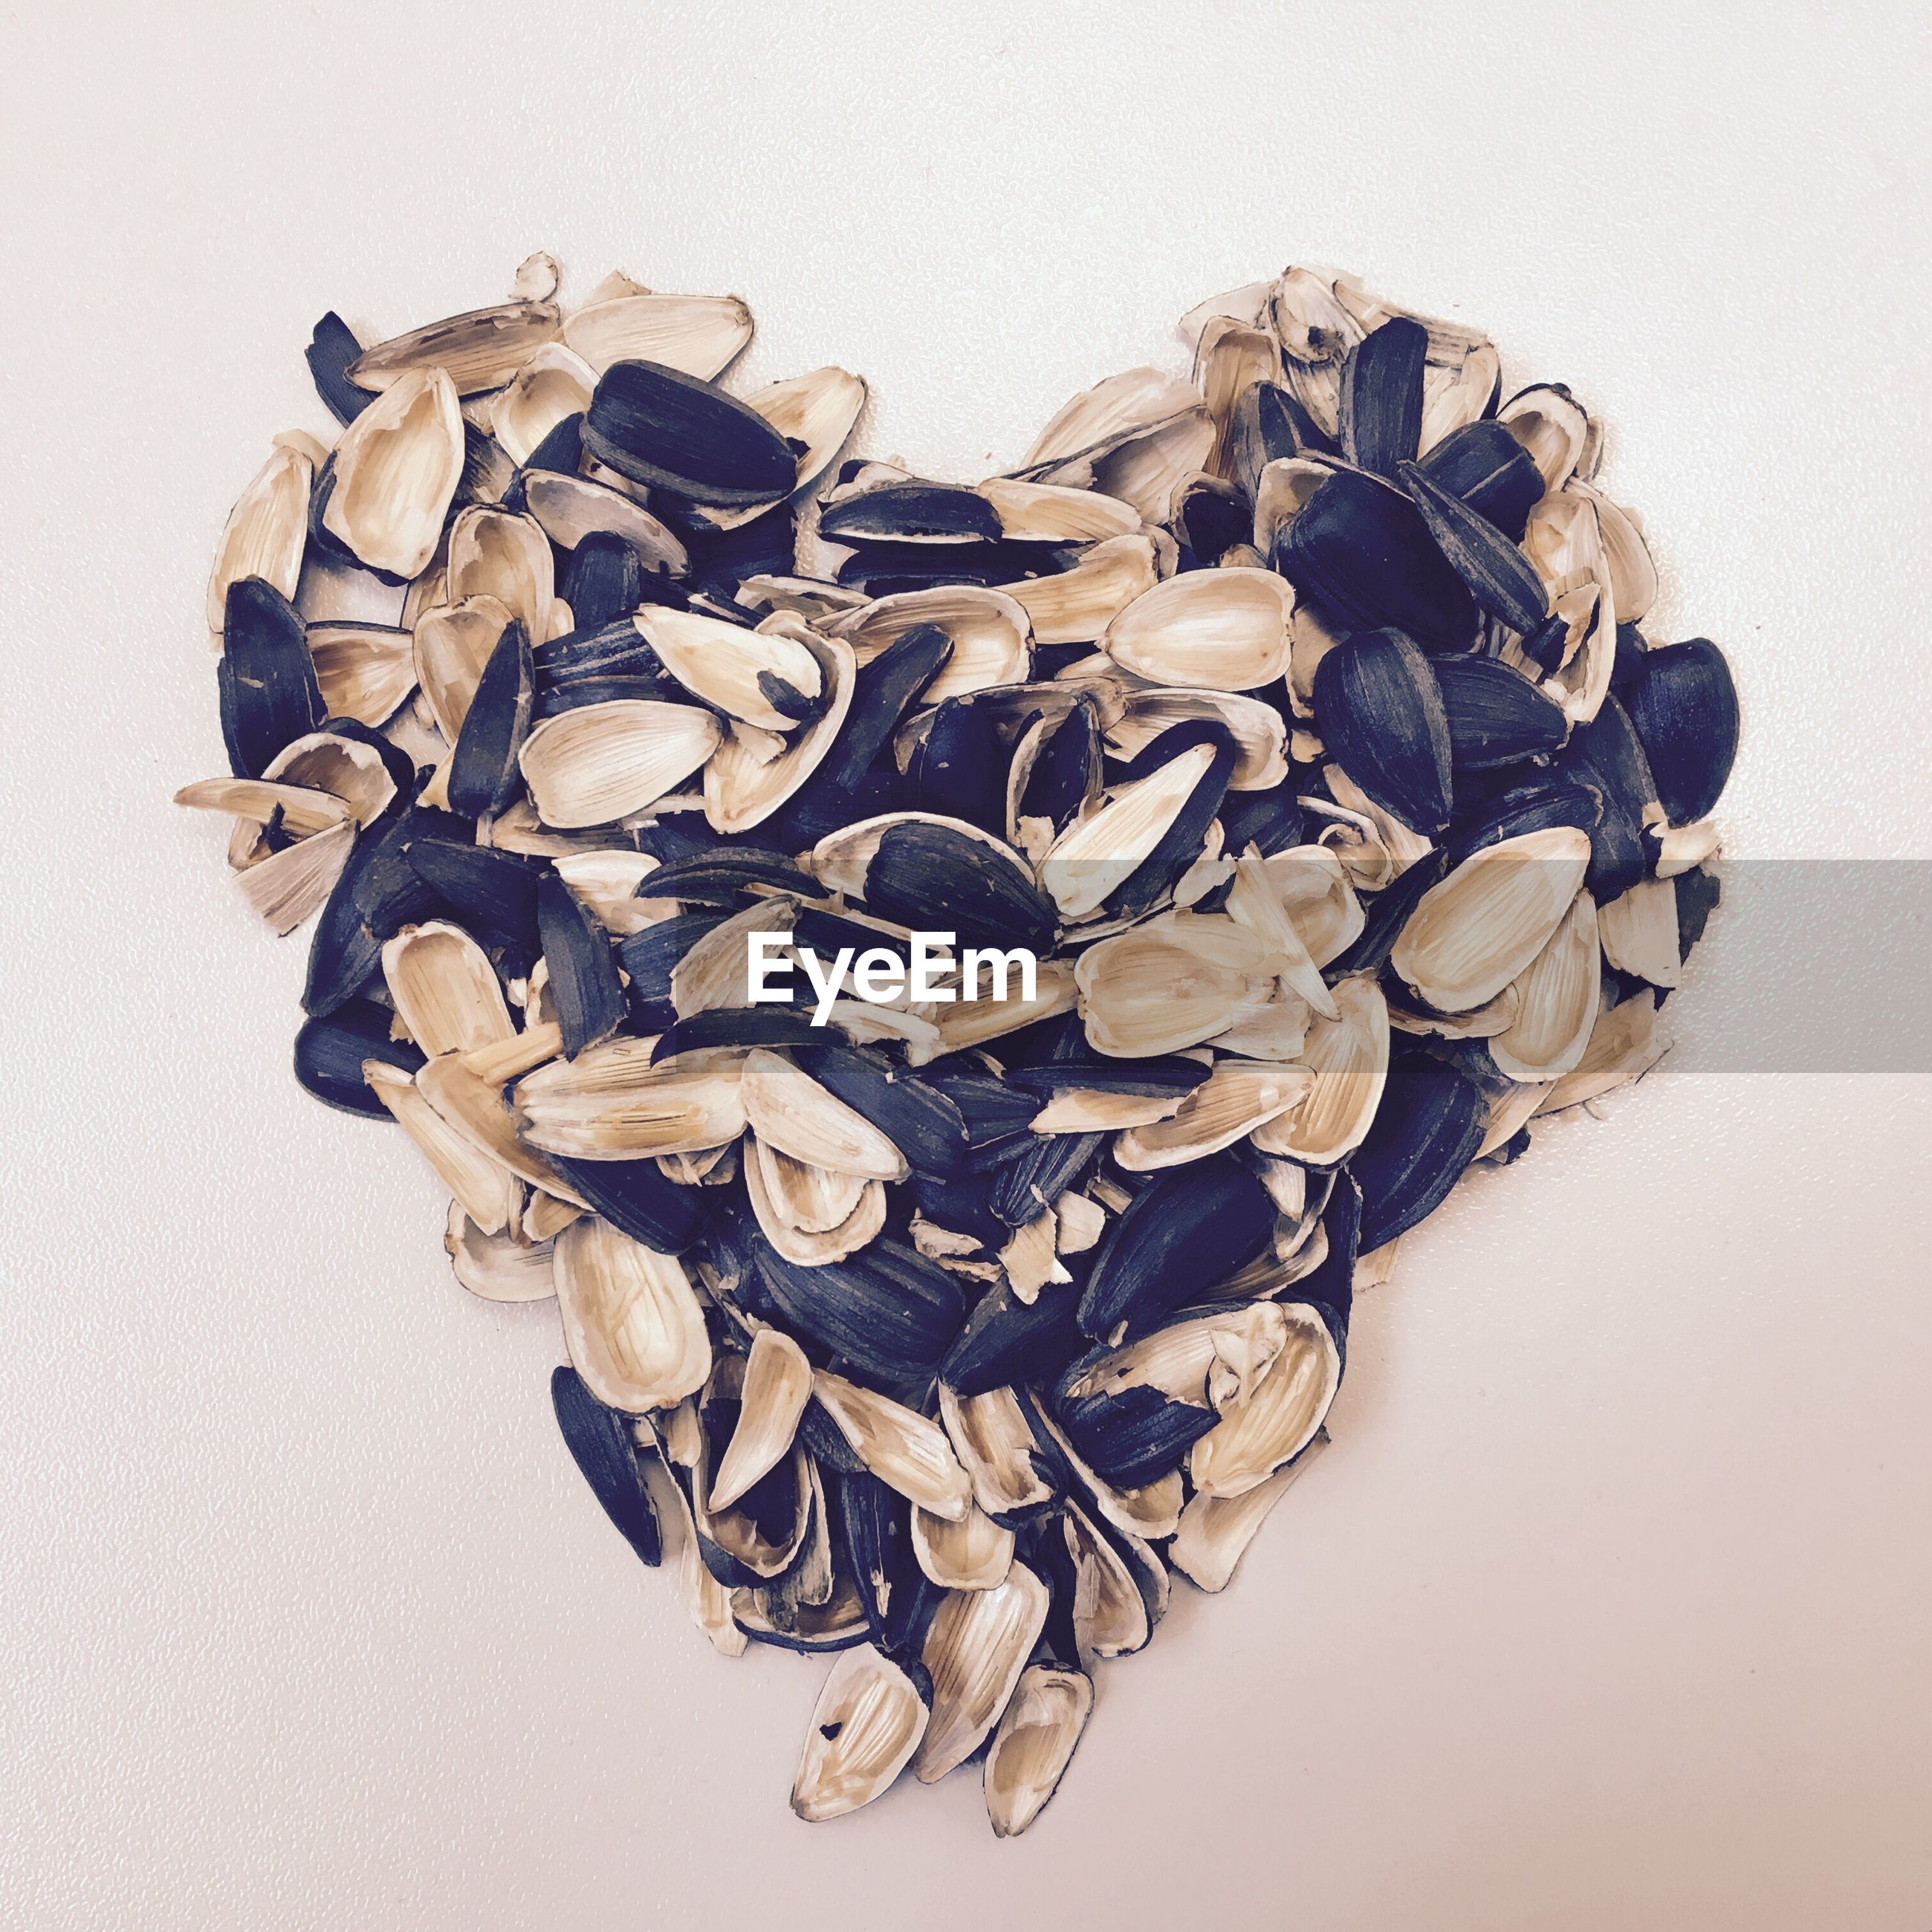 Heart shape formed of mussels on white background